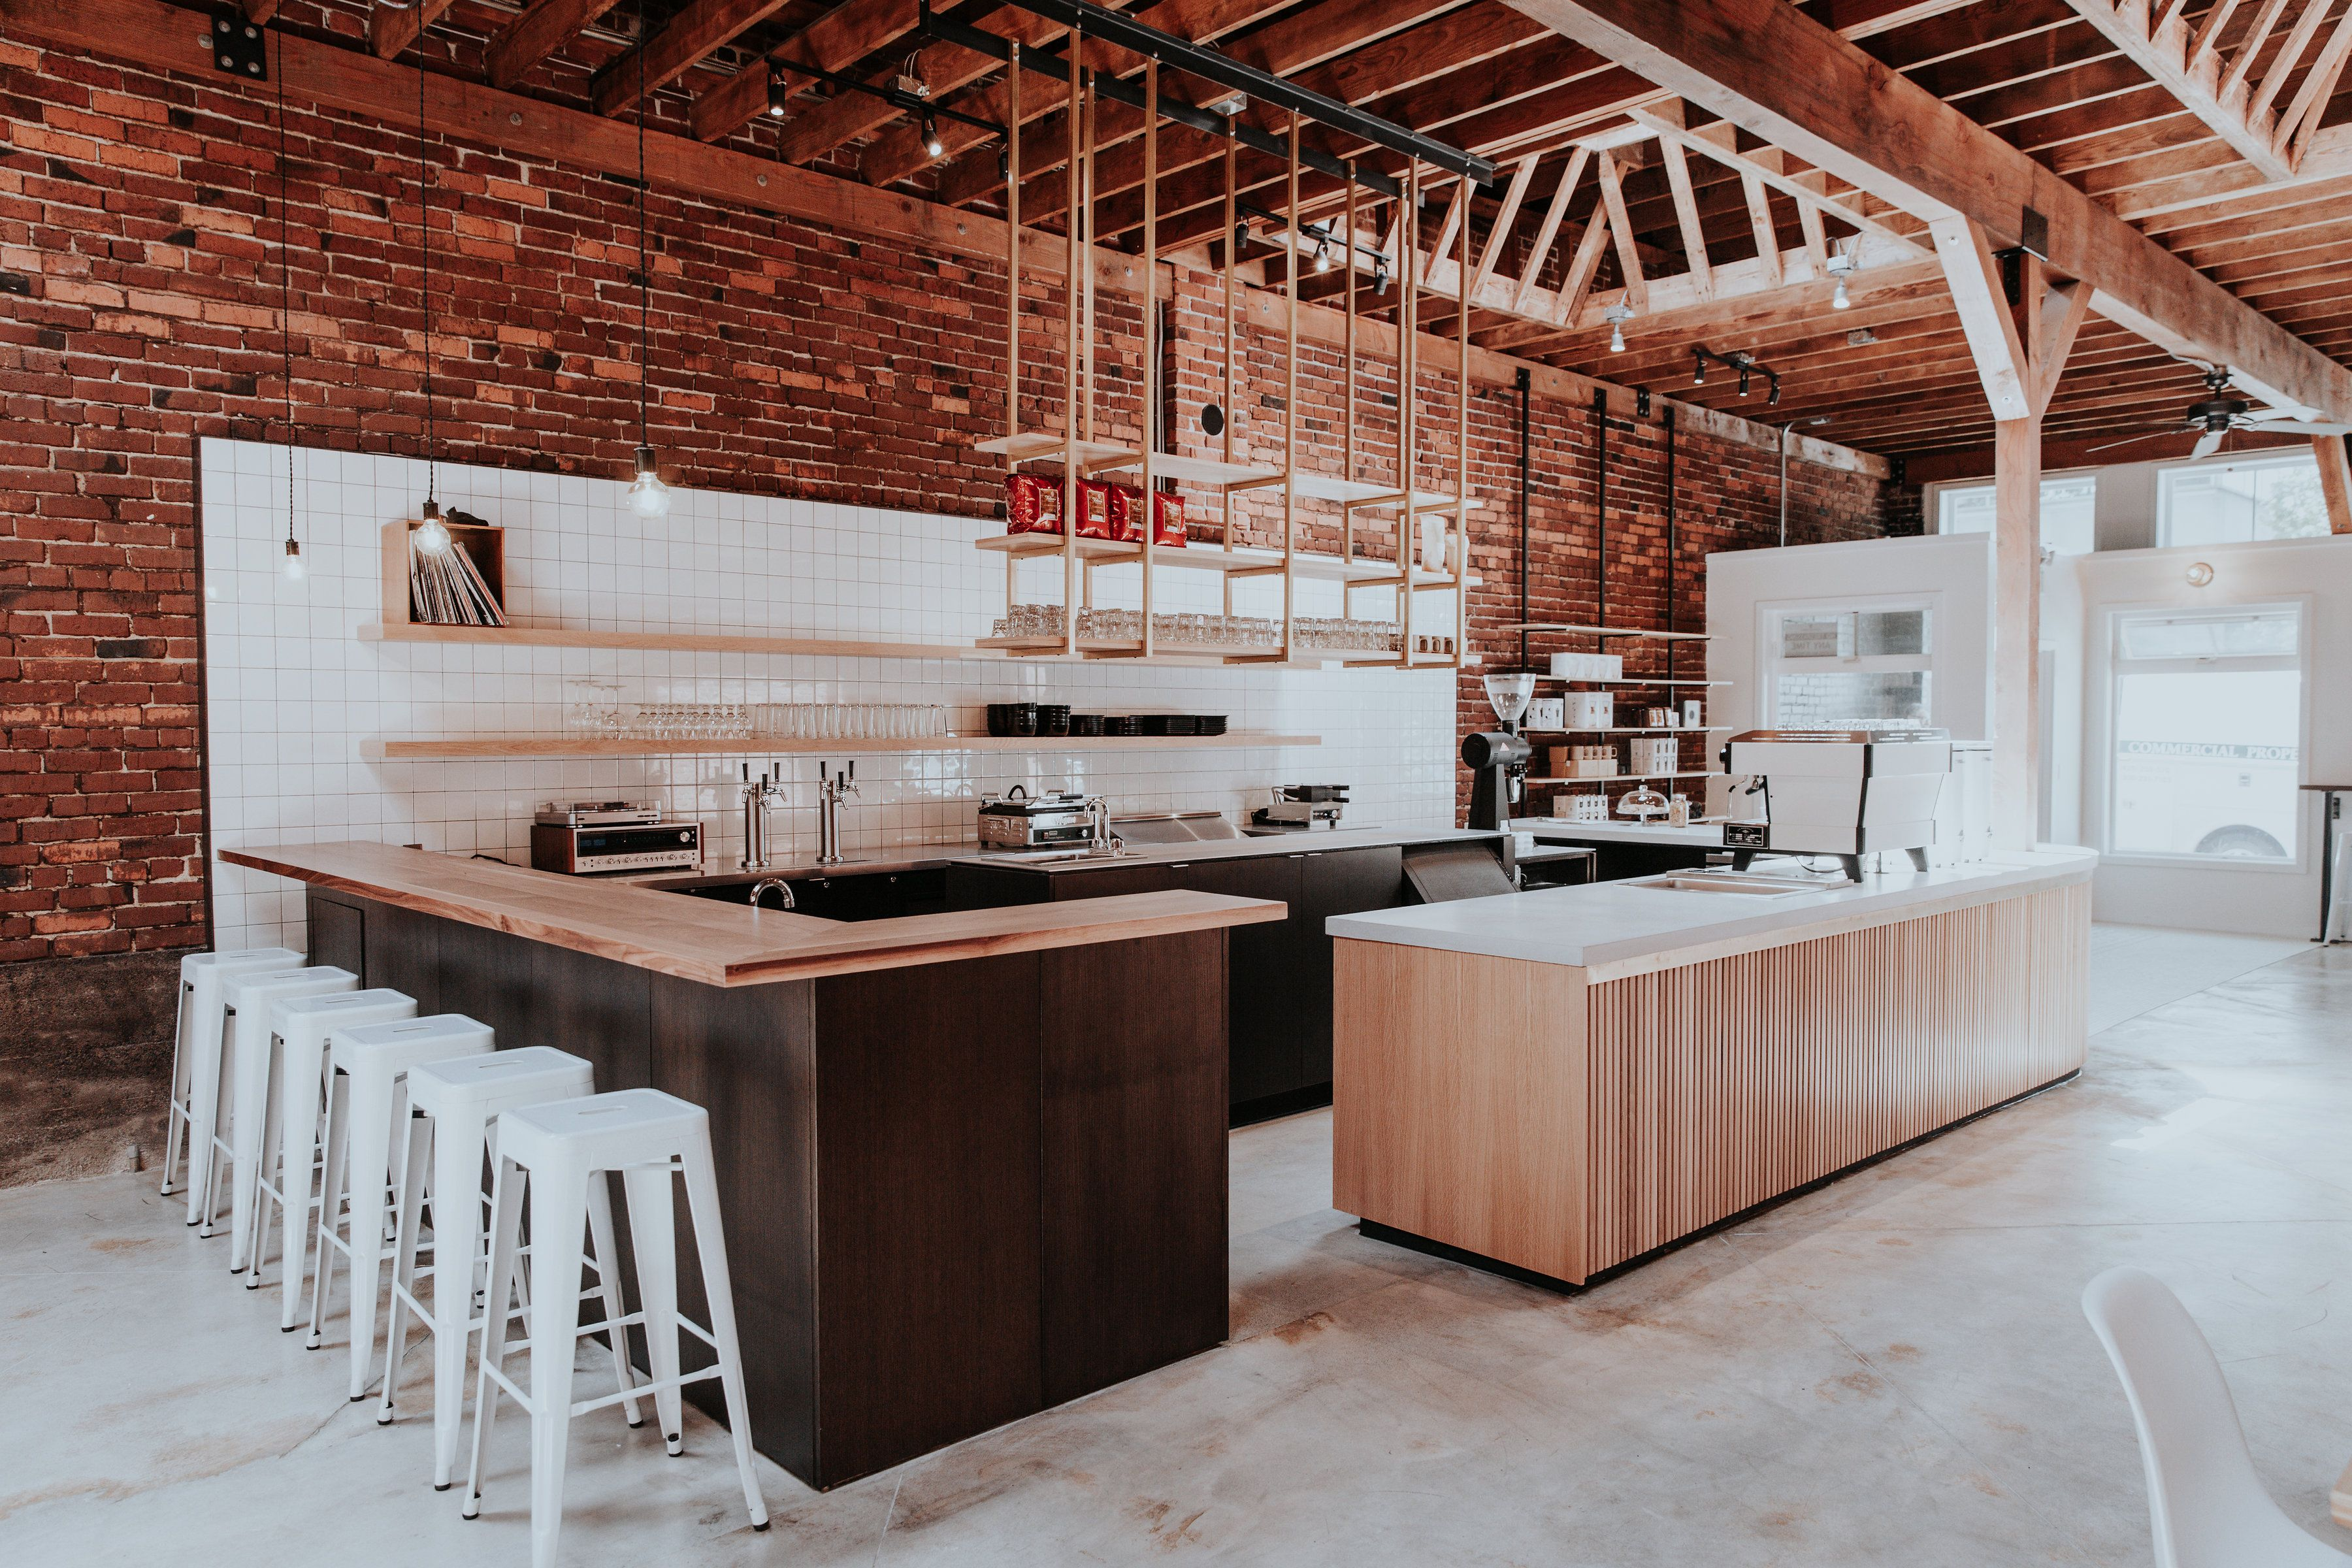 Everett Rising: First Look Inside Narrative Coffee's New Brick And Mortar